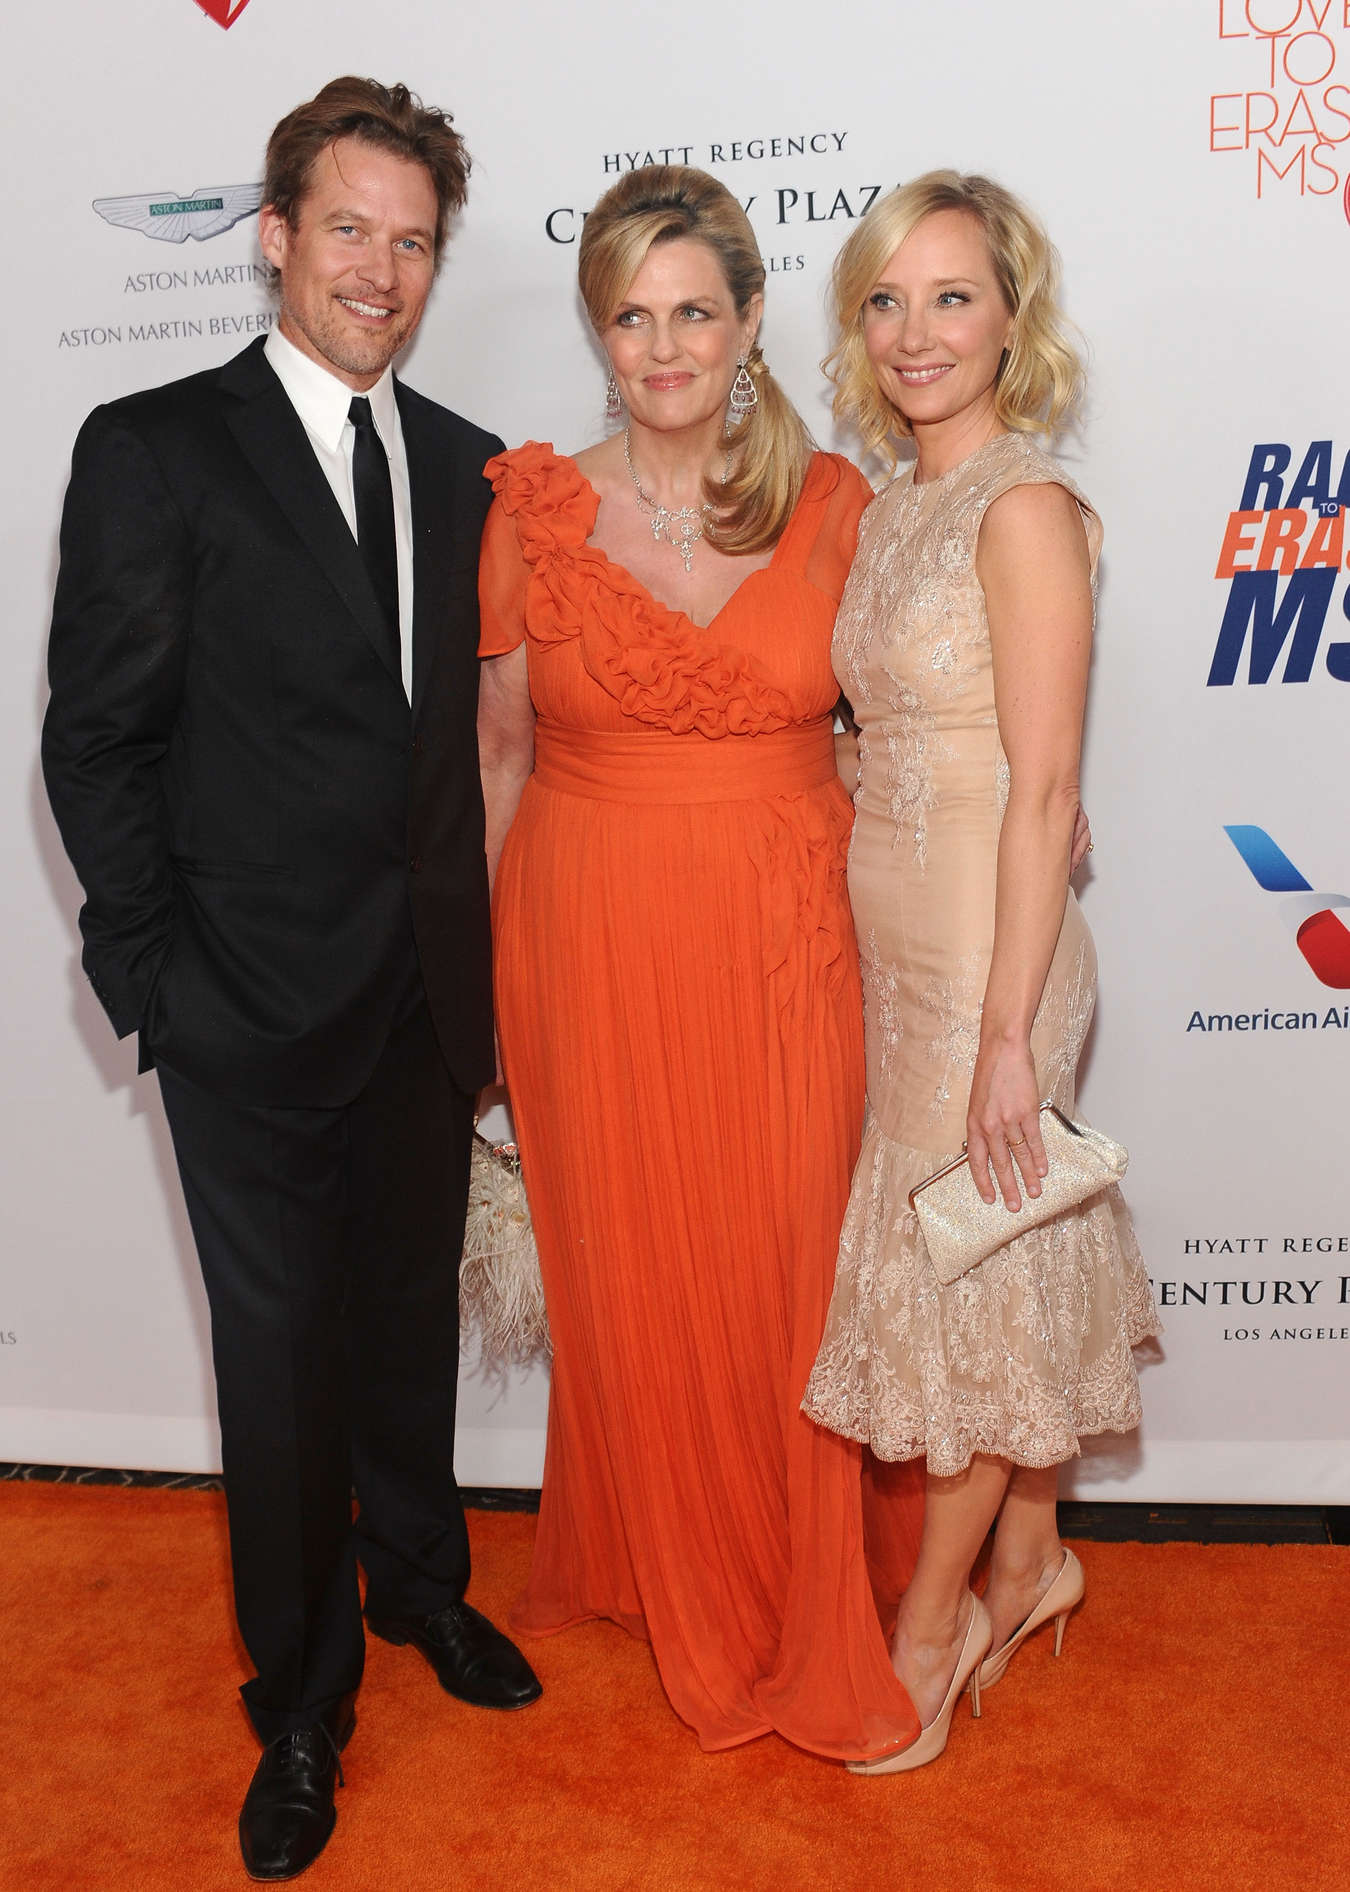 Anne Heche at the Annual Race to Erase MS Gala in Los Angeles